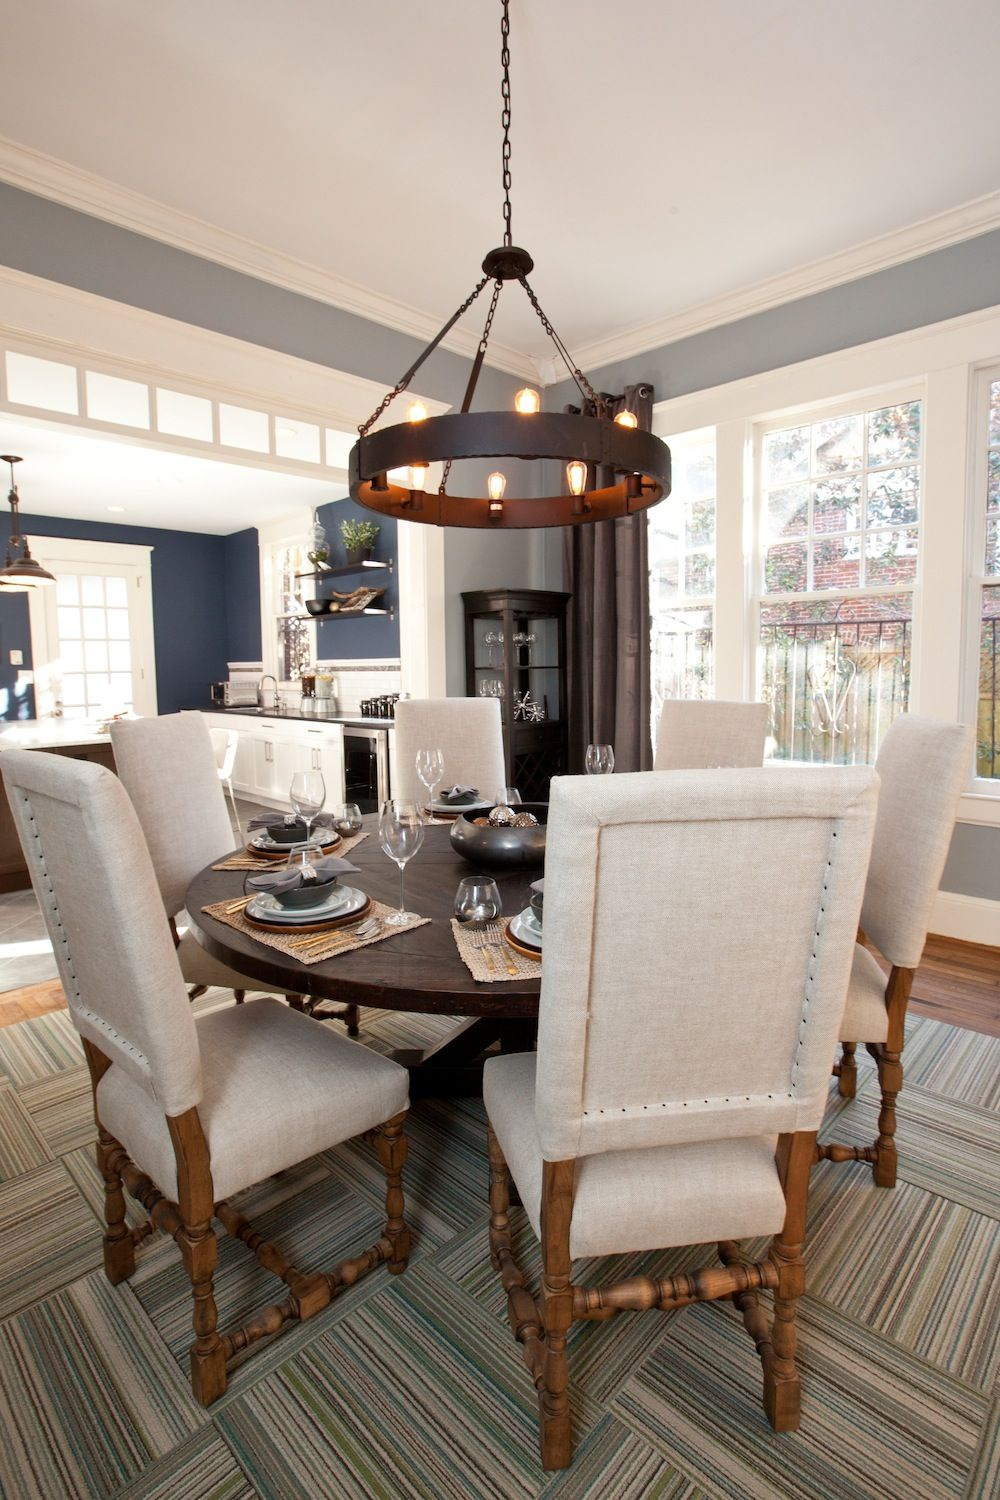 FAMILY ROOM LIGHTING Troy Lighting Jackson Pendant